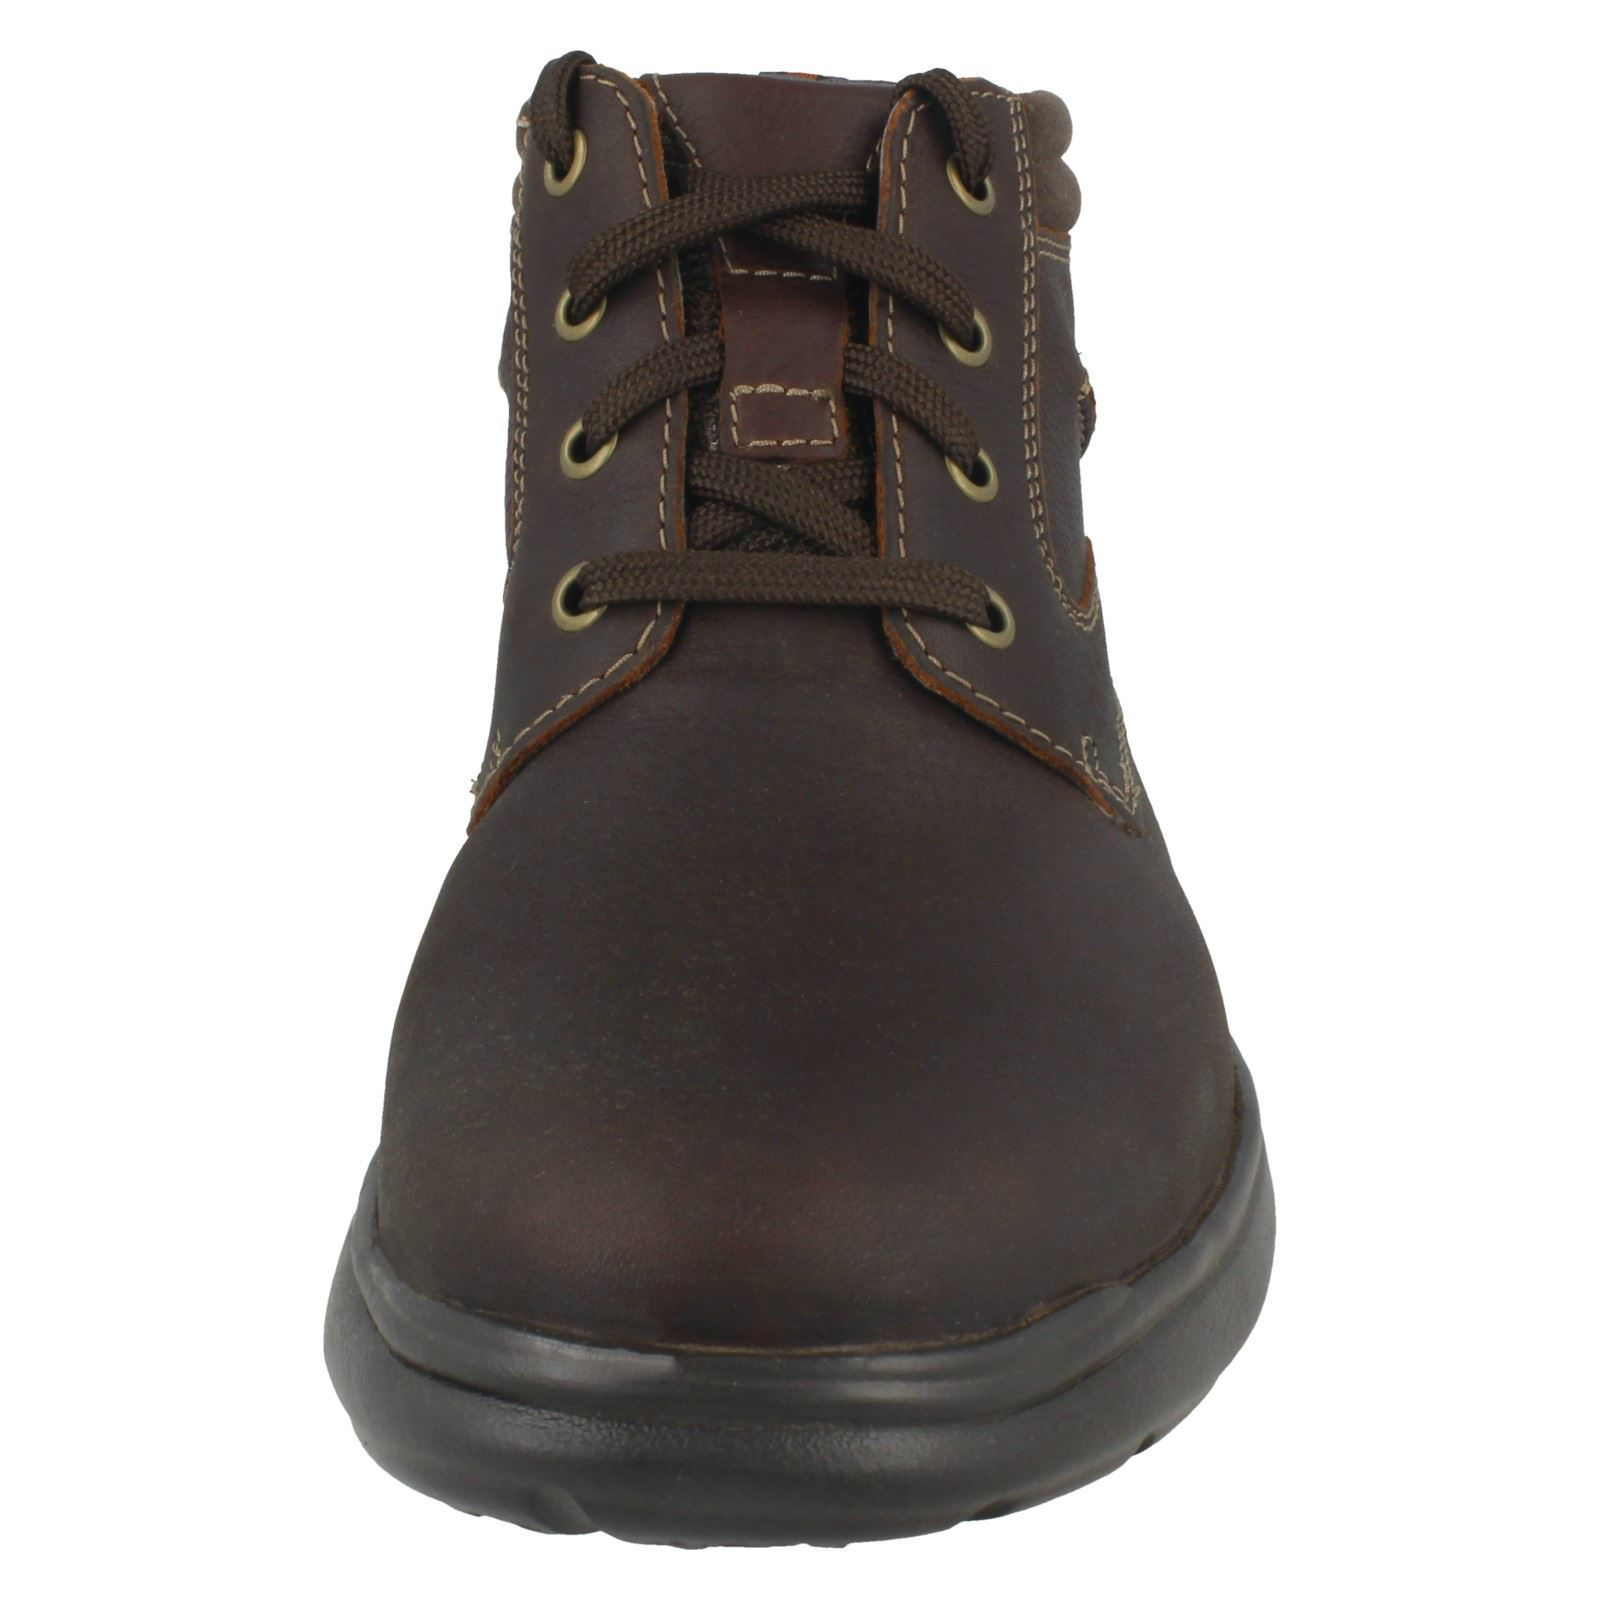 a6ae90621fc Details about Mens Clarks Casual Lace Up Leather & Textile Ankle Boots  Cotrell Rise